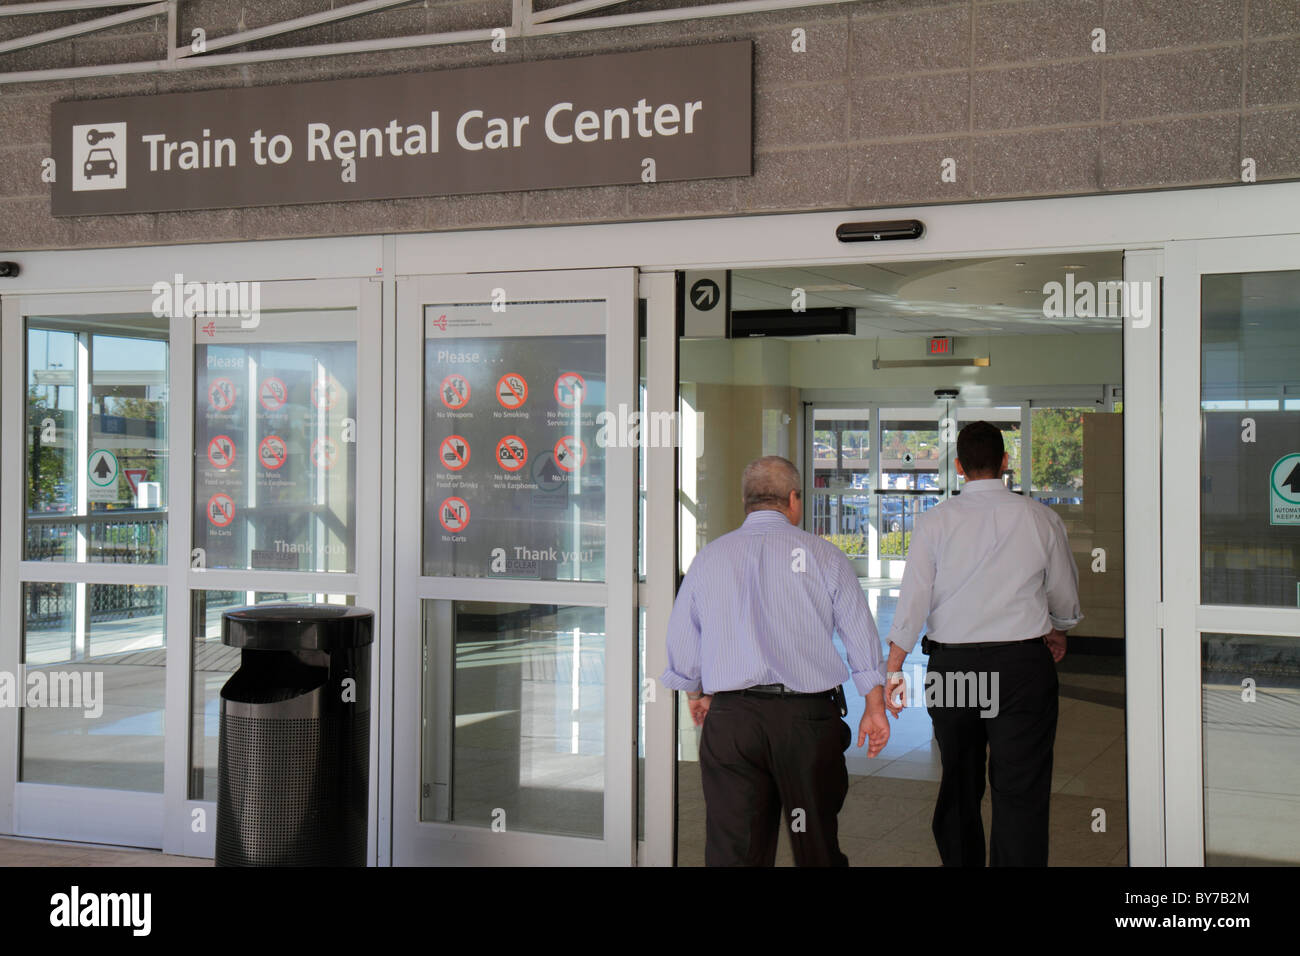 Car Rental Near Hartsfield Jackson Airport